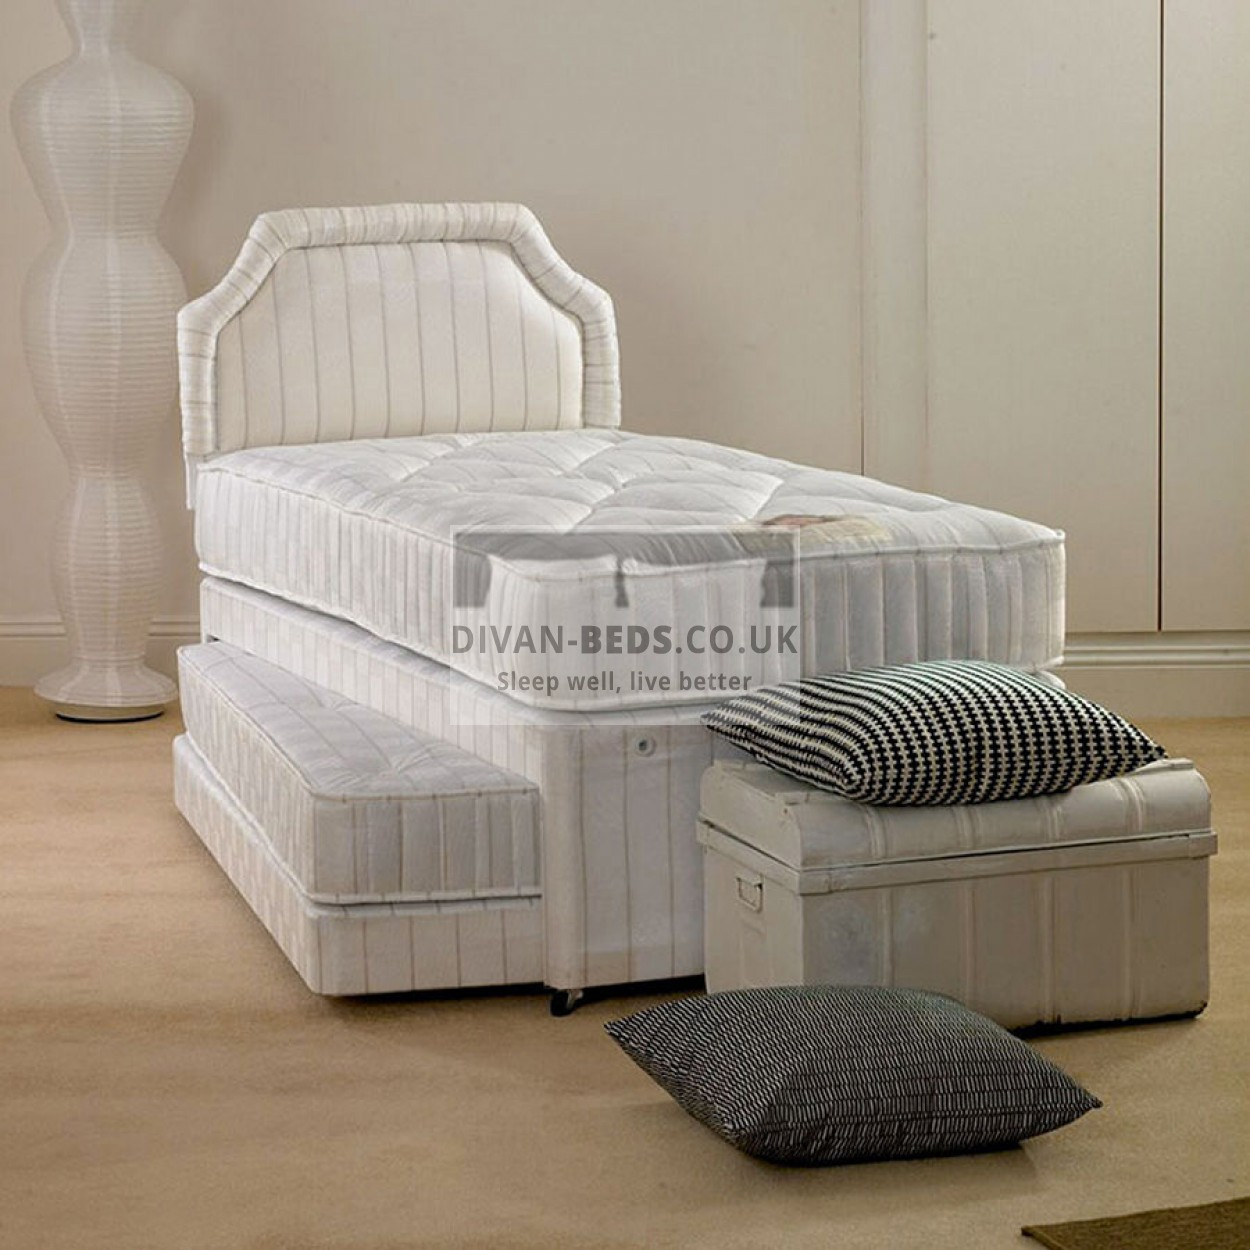 Duncan single divan 2 in 1 guest bed with mattresses for Single divan and mattress